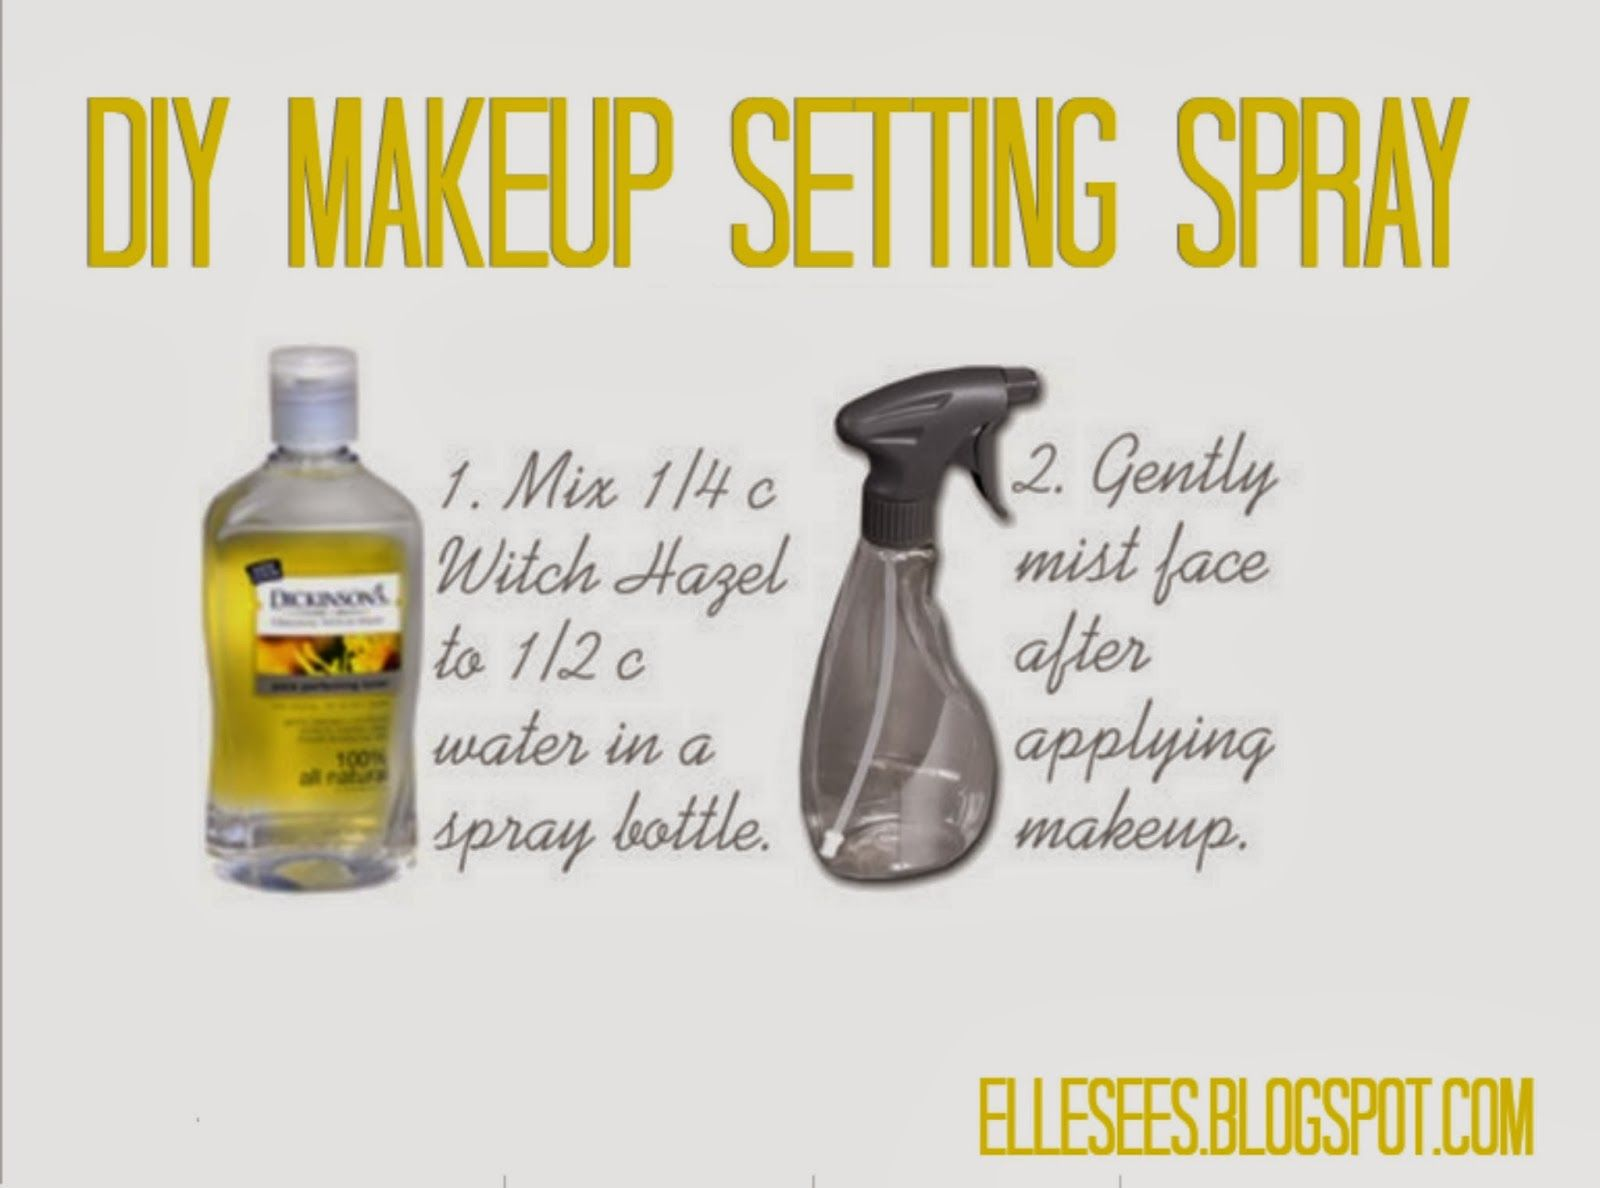 DIY Makeup Setting Spray | from the Elle Sees Blog | Diy ...